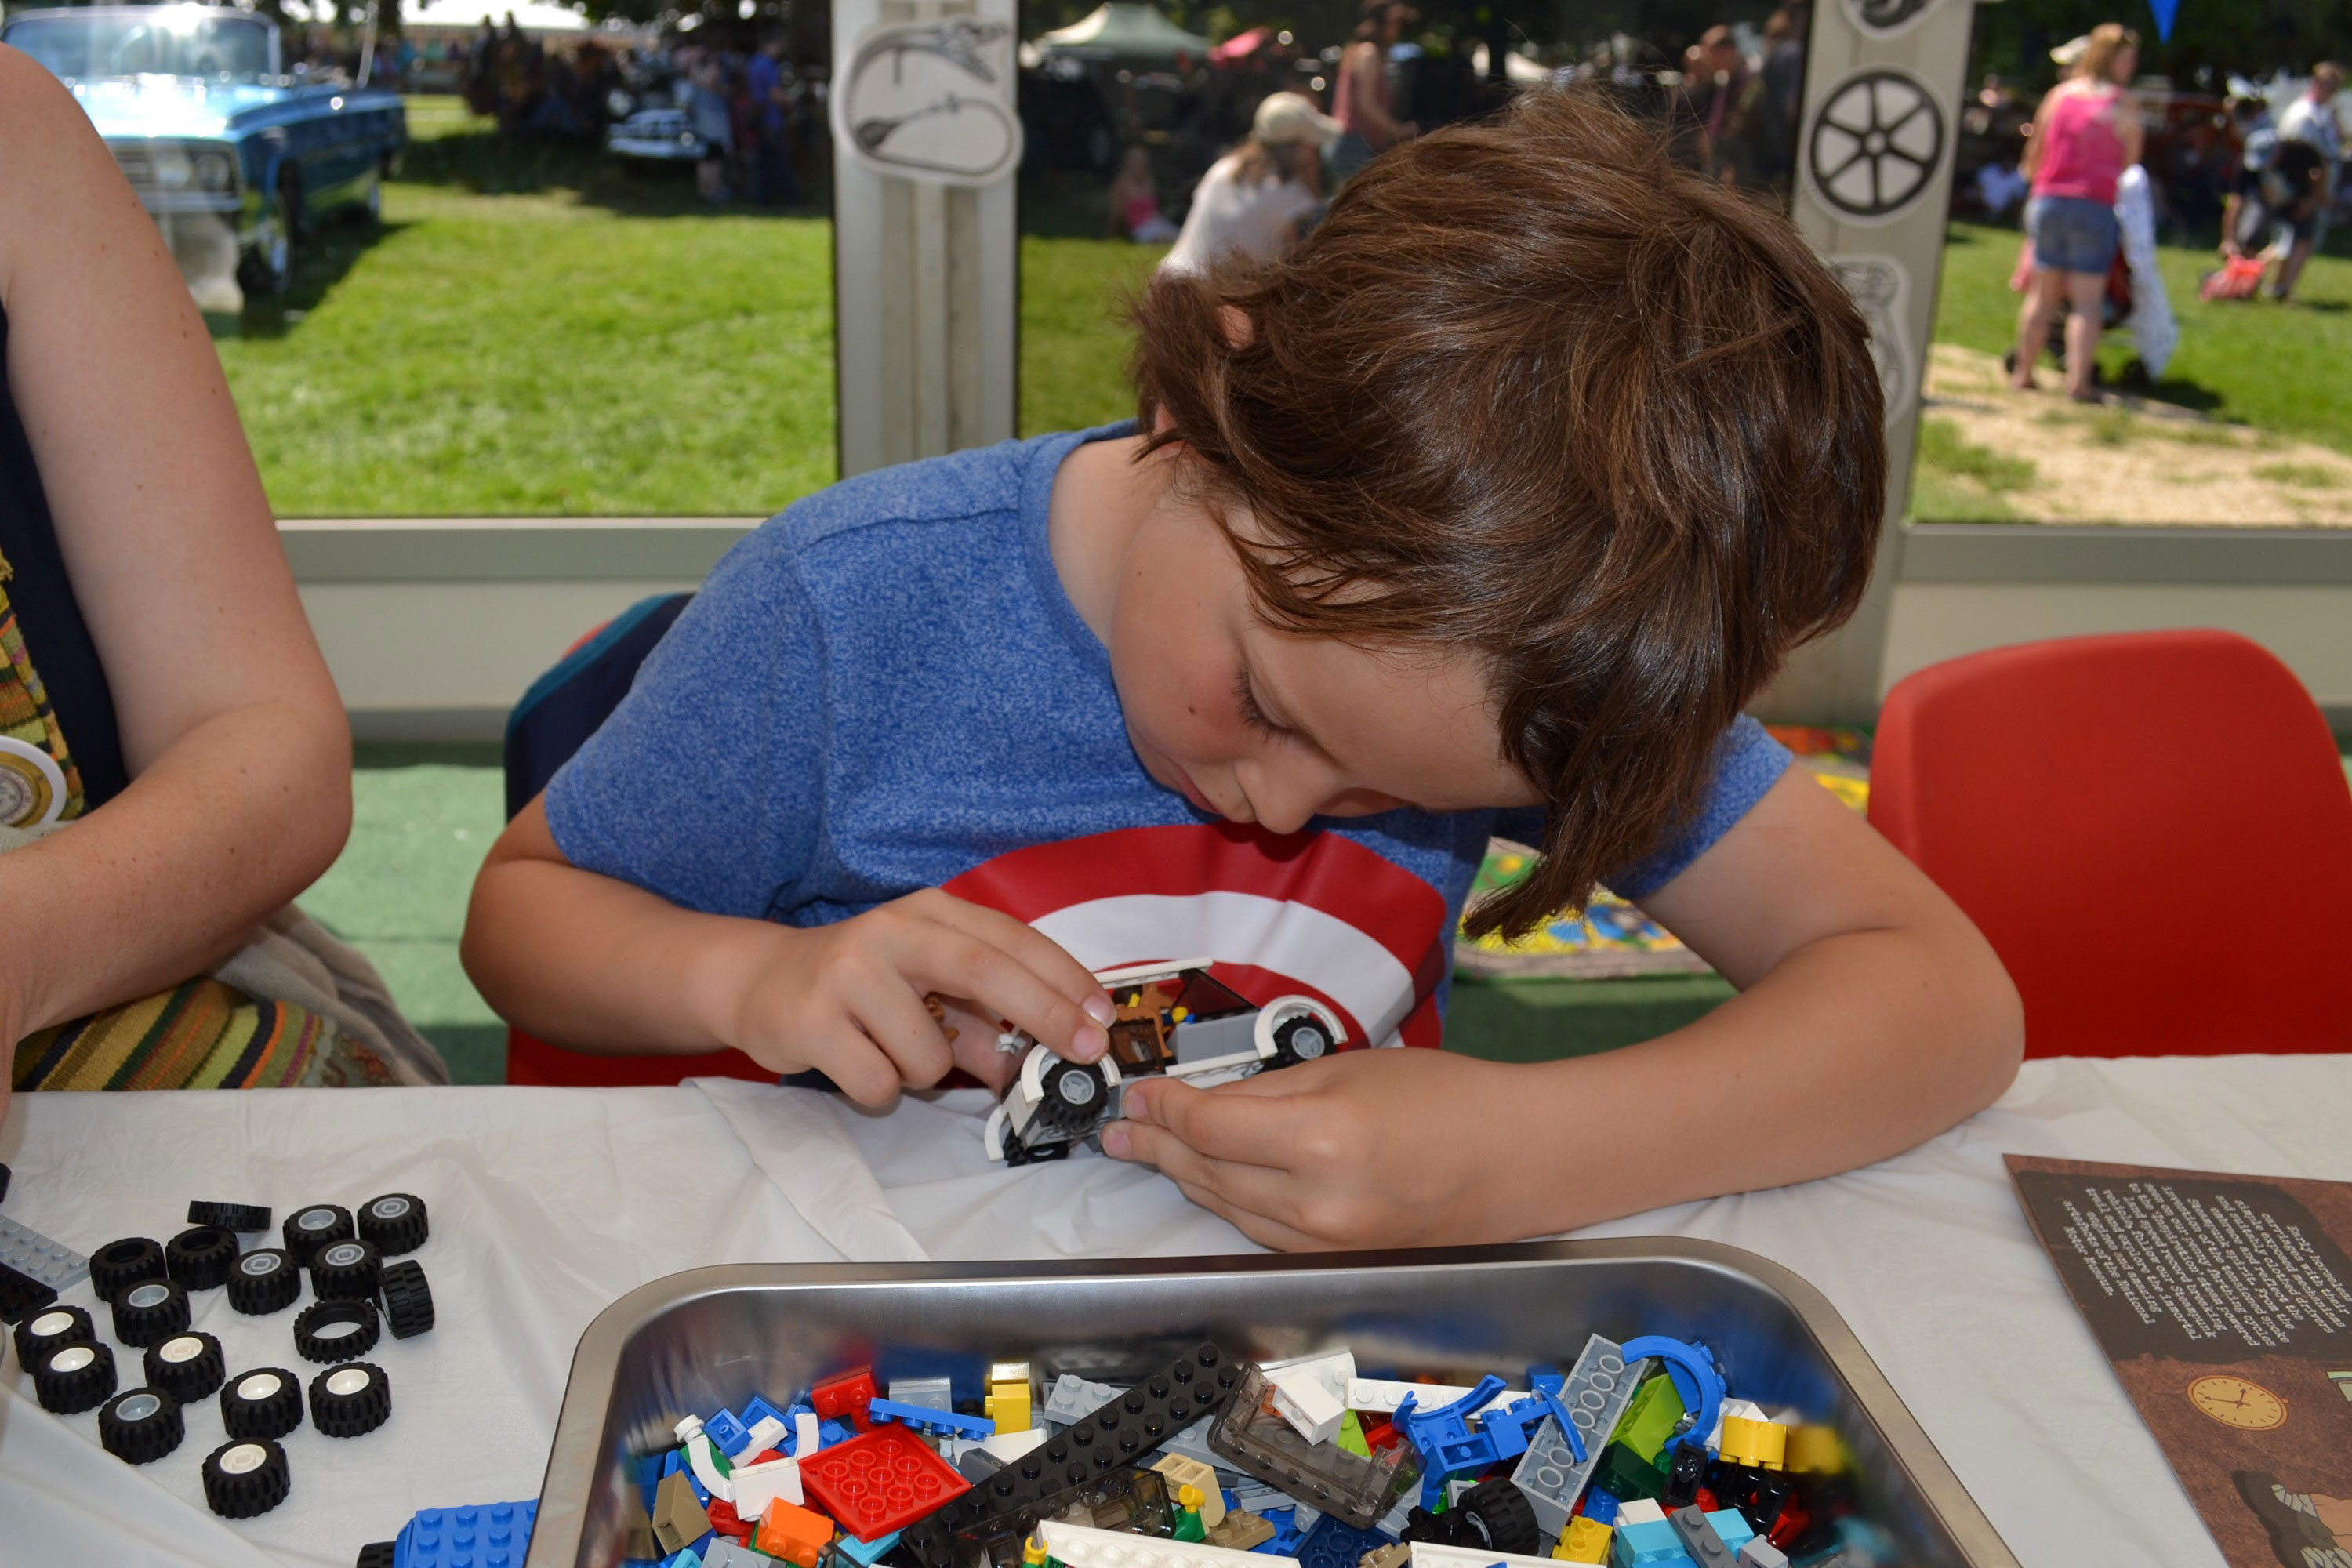 Boy making lego in a steampunk creative fun workshop at Beaulieu